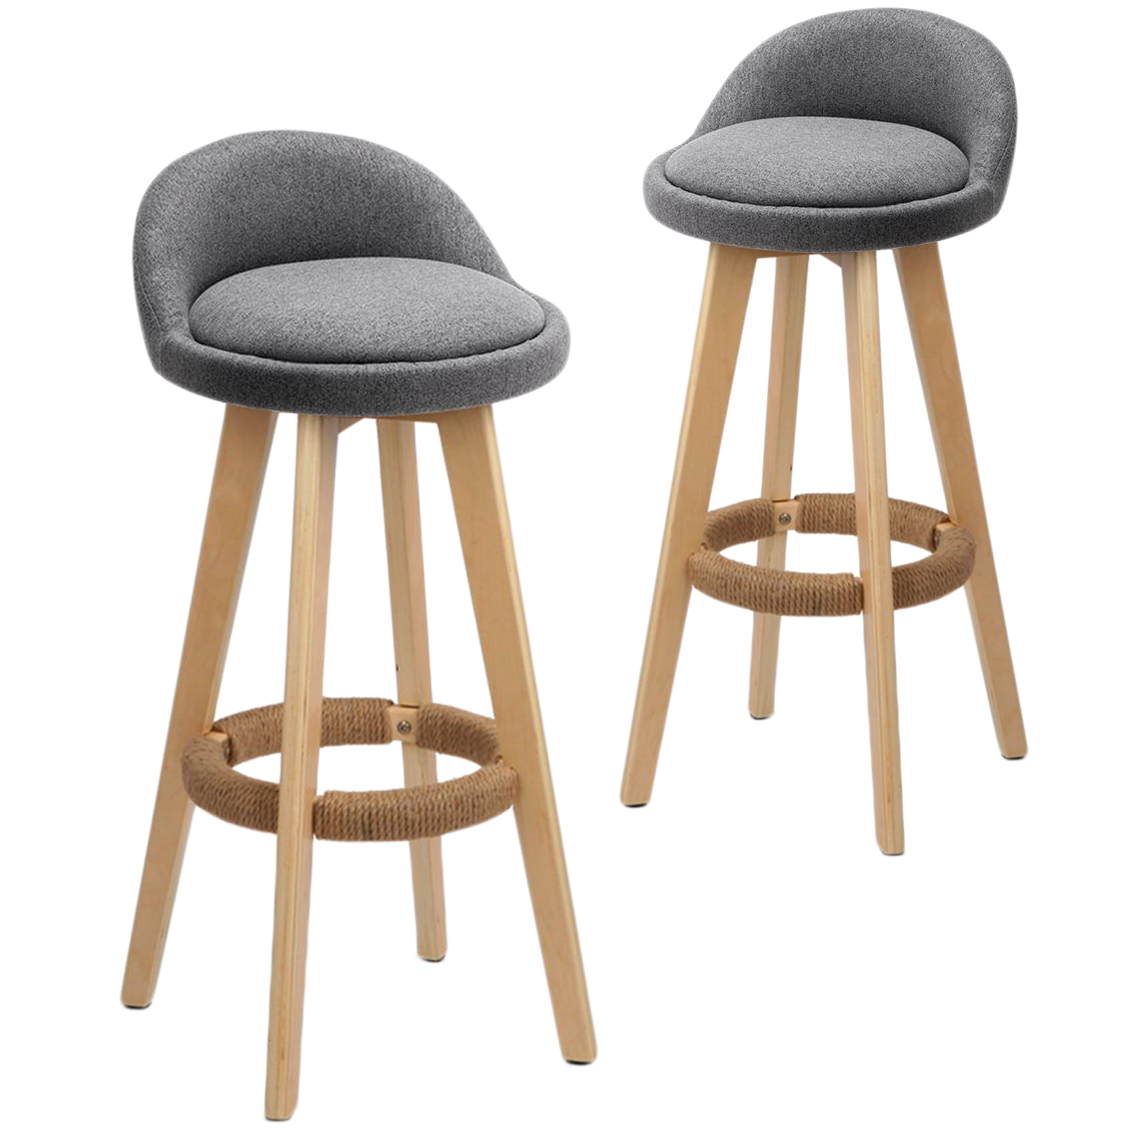 Remarkable Details About New Set Of 2 Dwell Home Davar Barstools Dwellhome Bar Stools Customarchery Wood Chair Design Ideas Customarcherynet